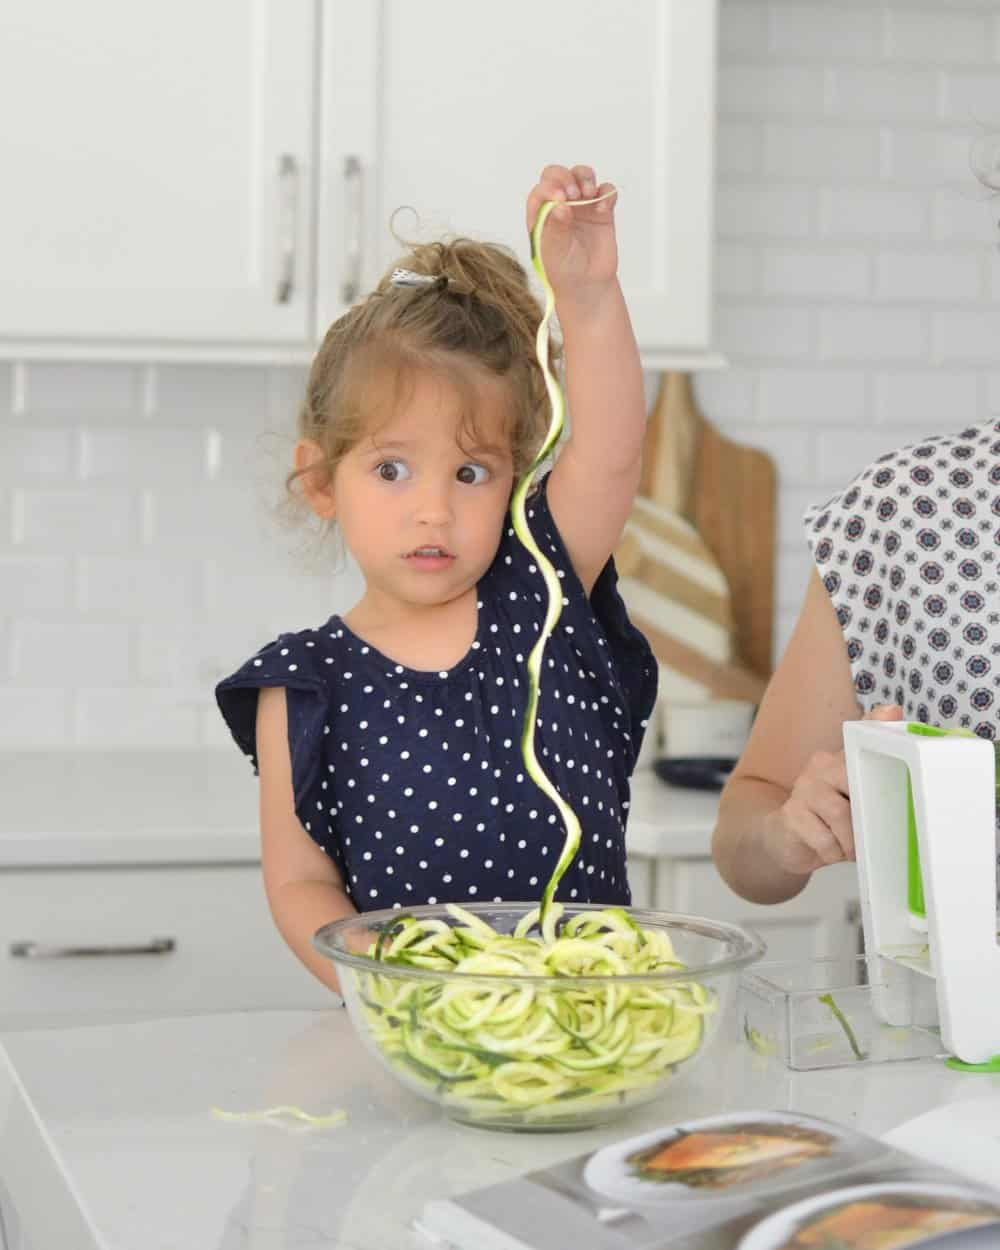 child holding noodles up in a kitchen